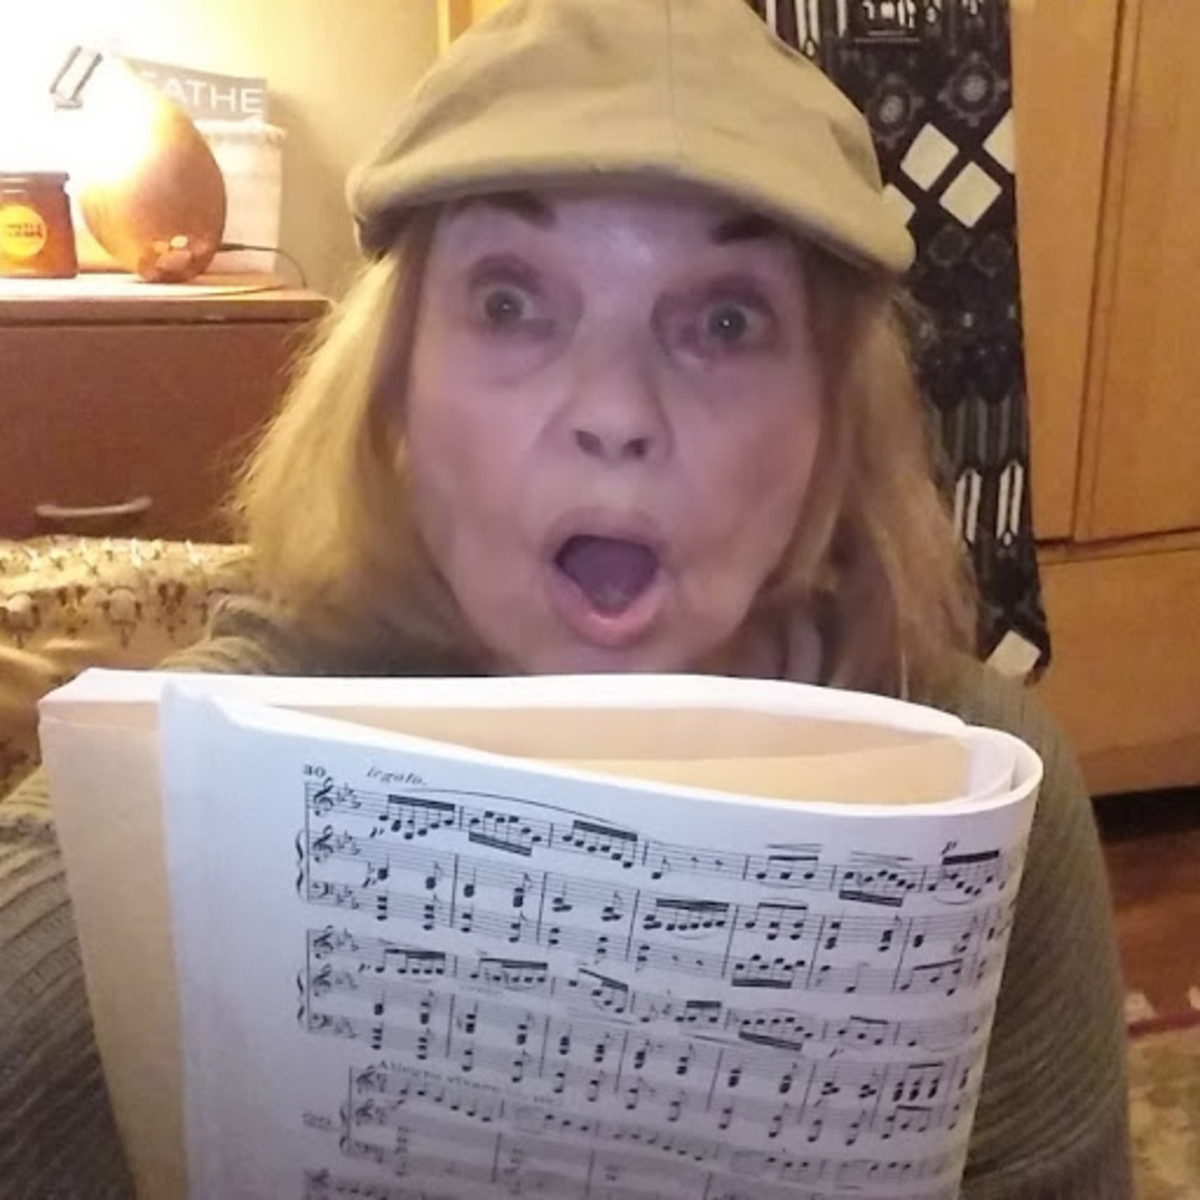 Author, in character, working on a new song for a musical production.